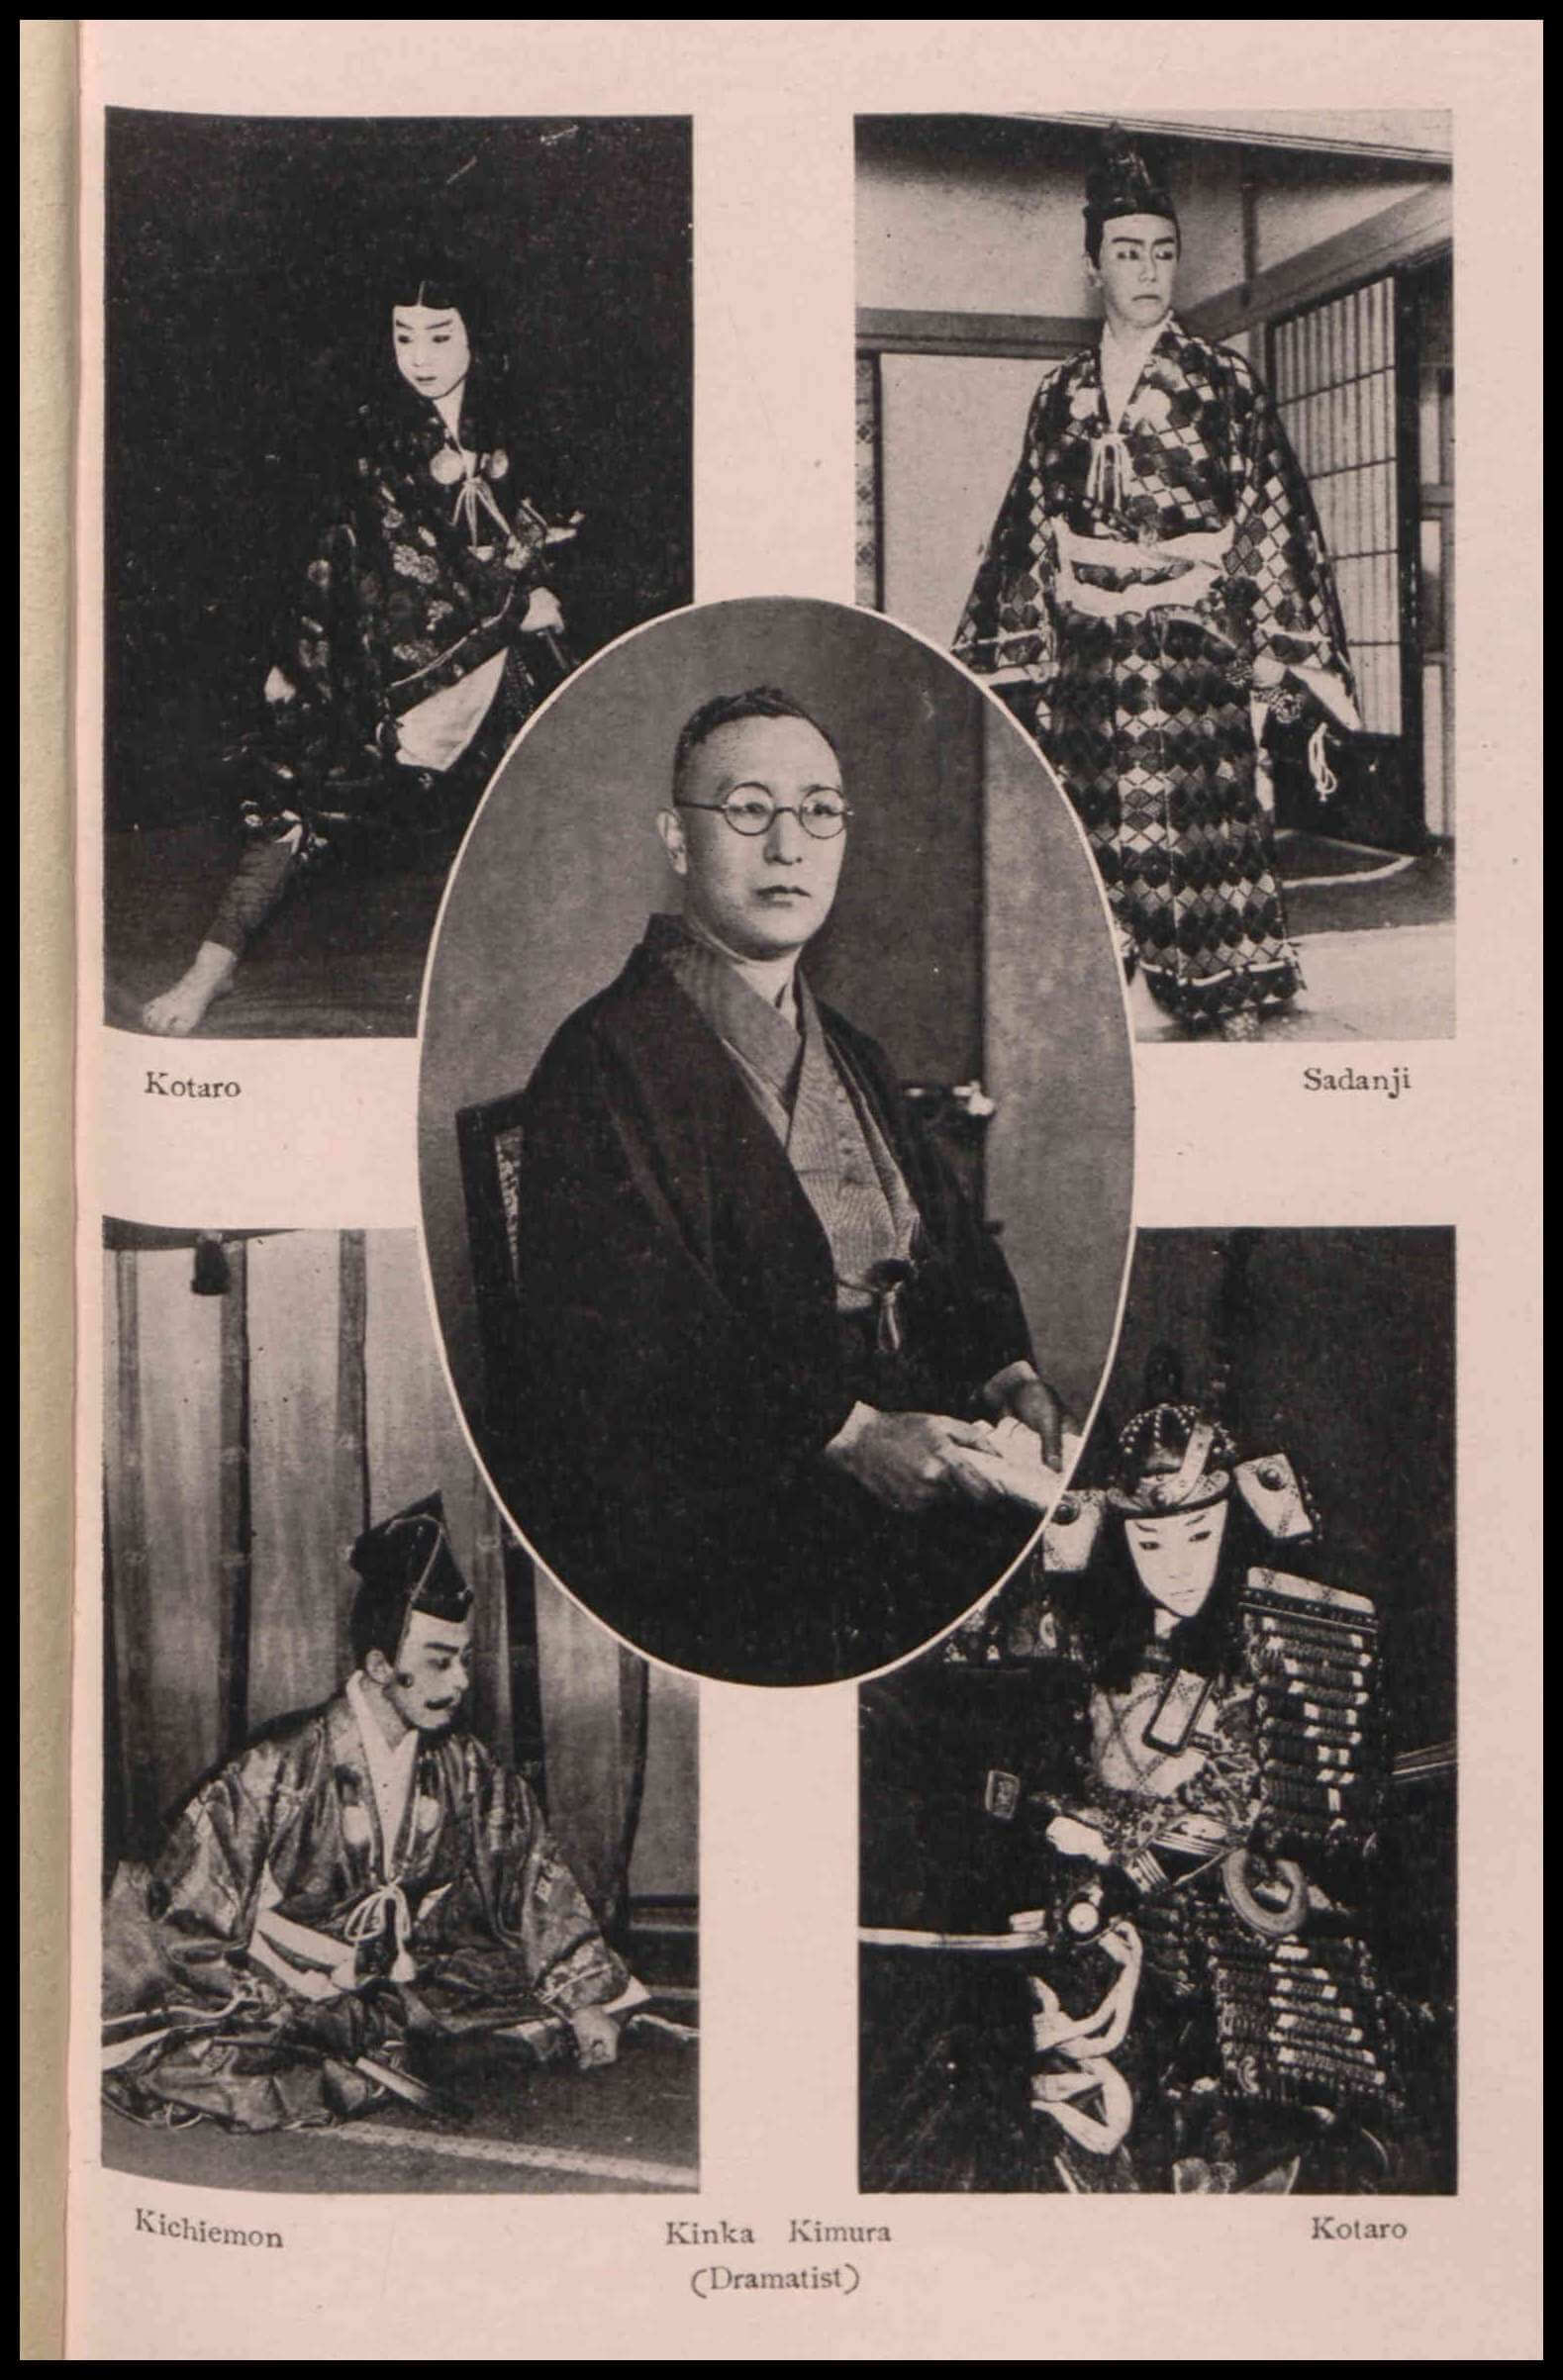 """""""All the world's a stage"""": diplomatic entertainment in inter-war Japan"""